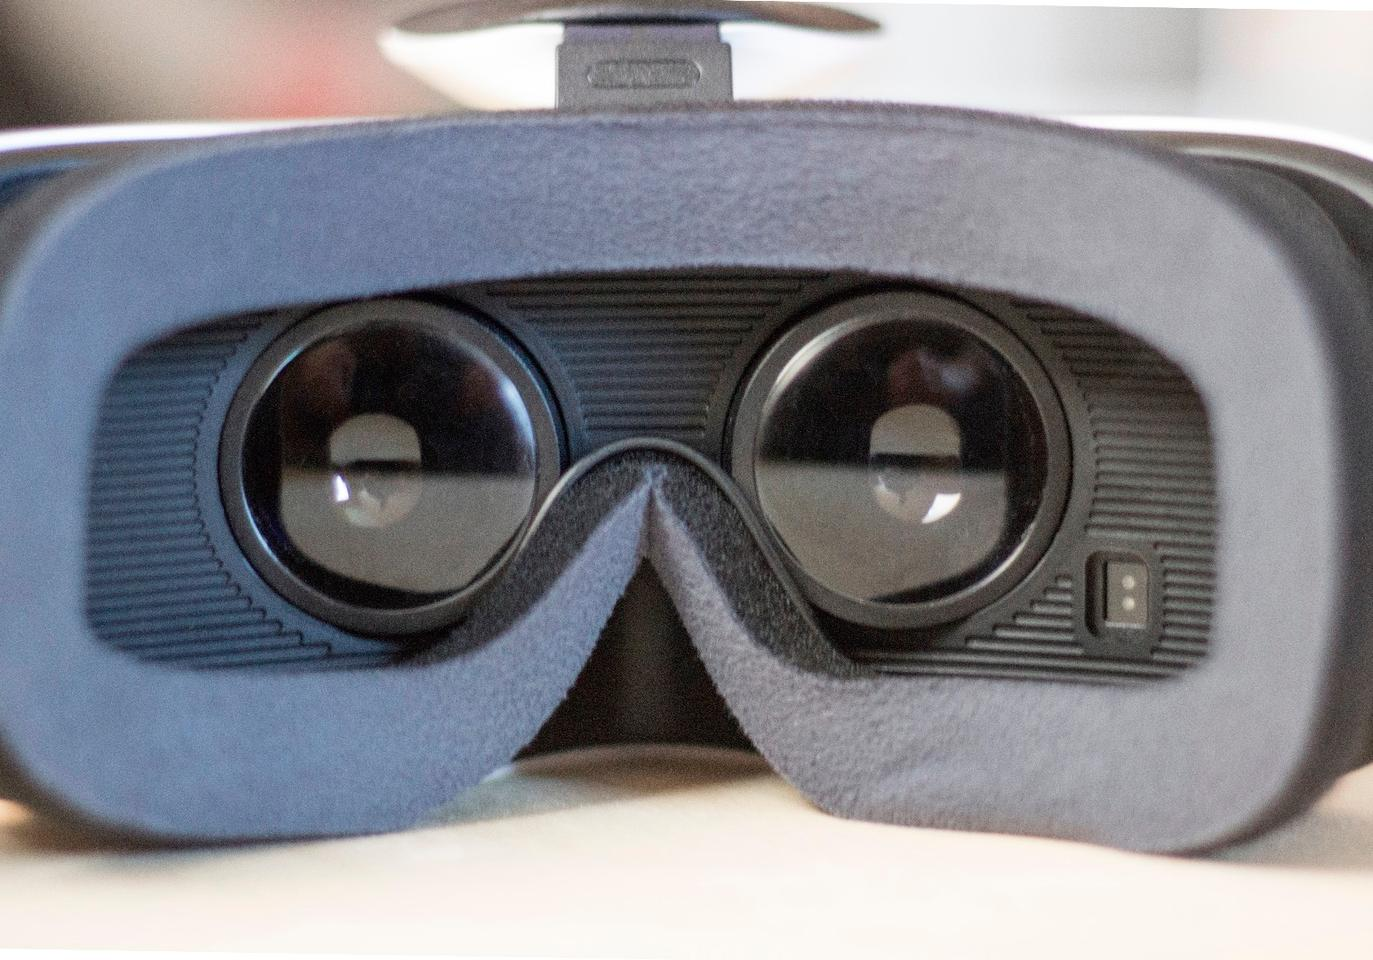 Lens-facing side of the Samsung Gear VR